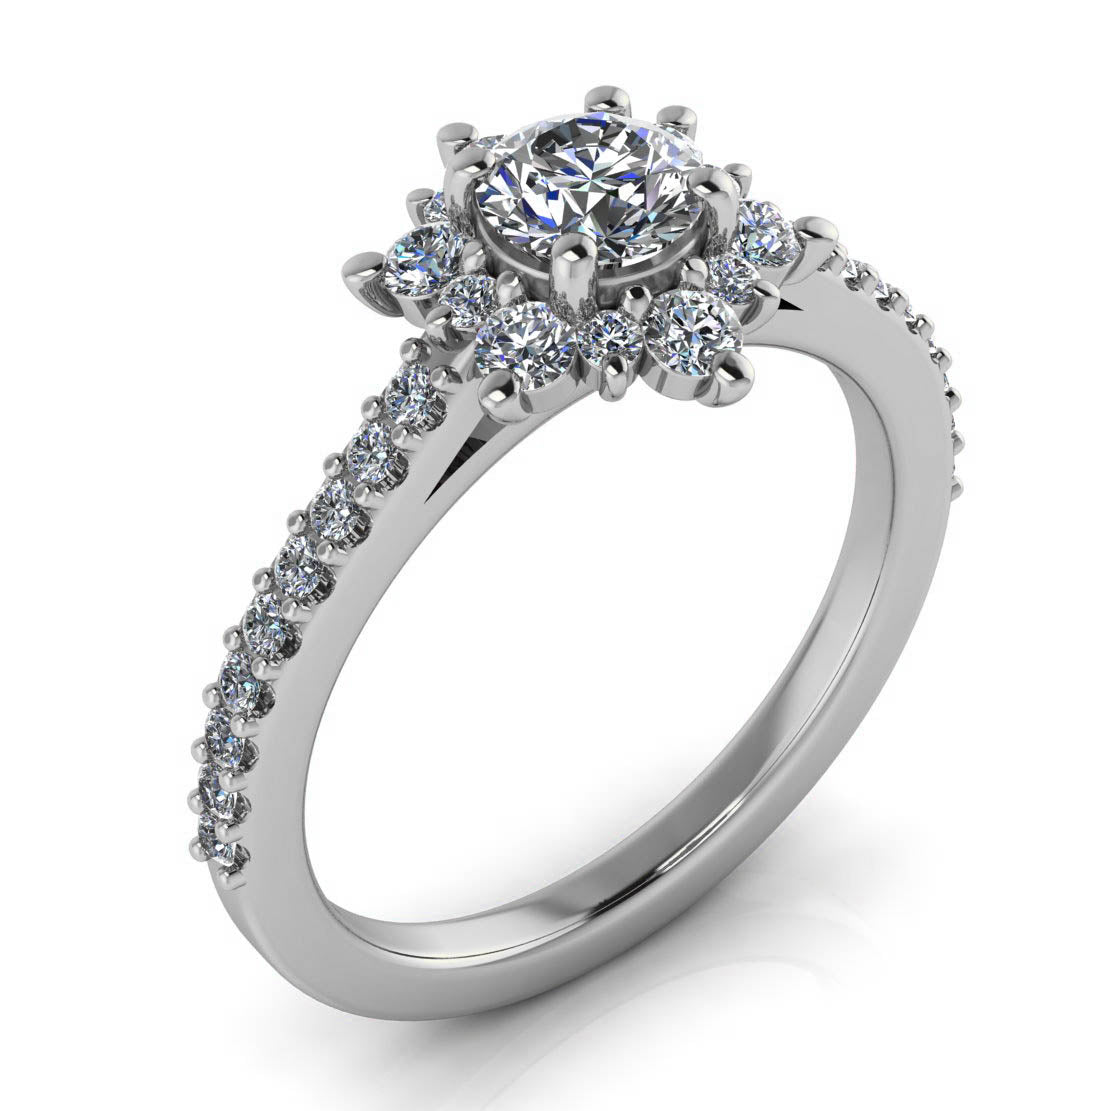 Dainty Diamond Halo Engagement Ring 5 mm Center Stone - Petite Snowflake II - Moissanite Rings